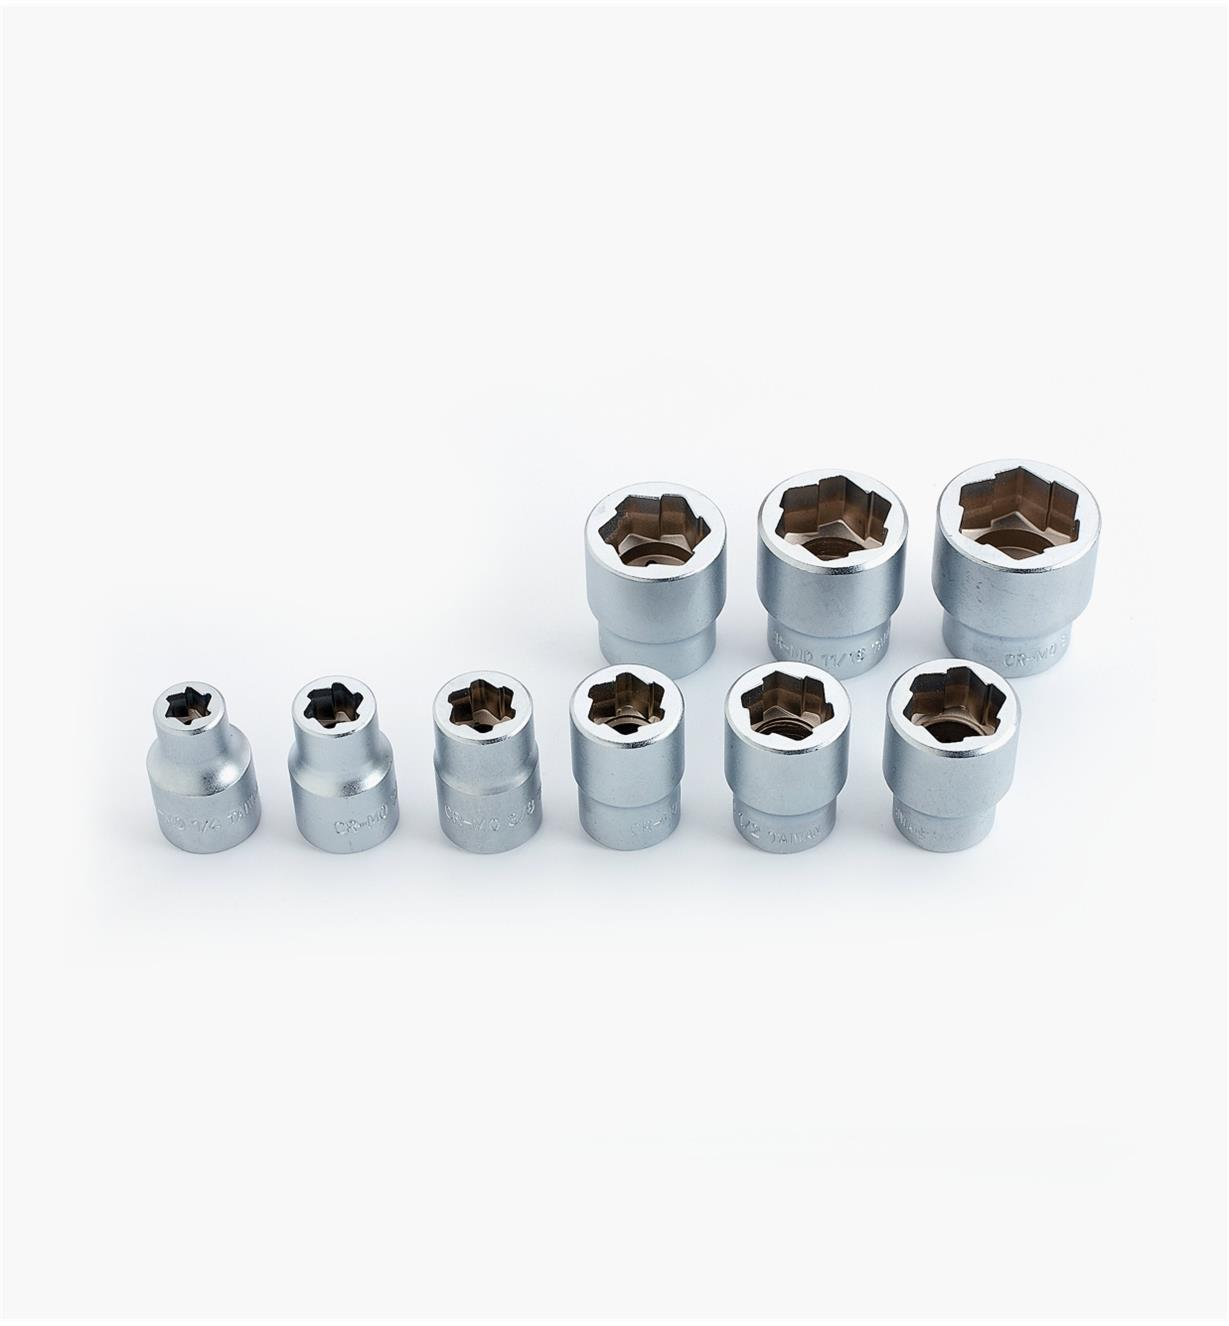 99W8976 - Bolt Extractor Sockets, 9-pc Set